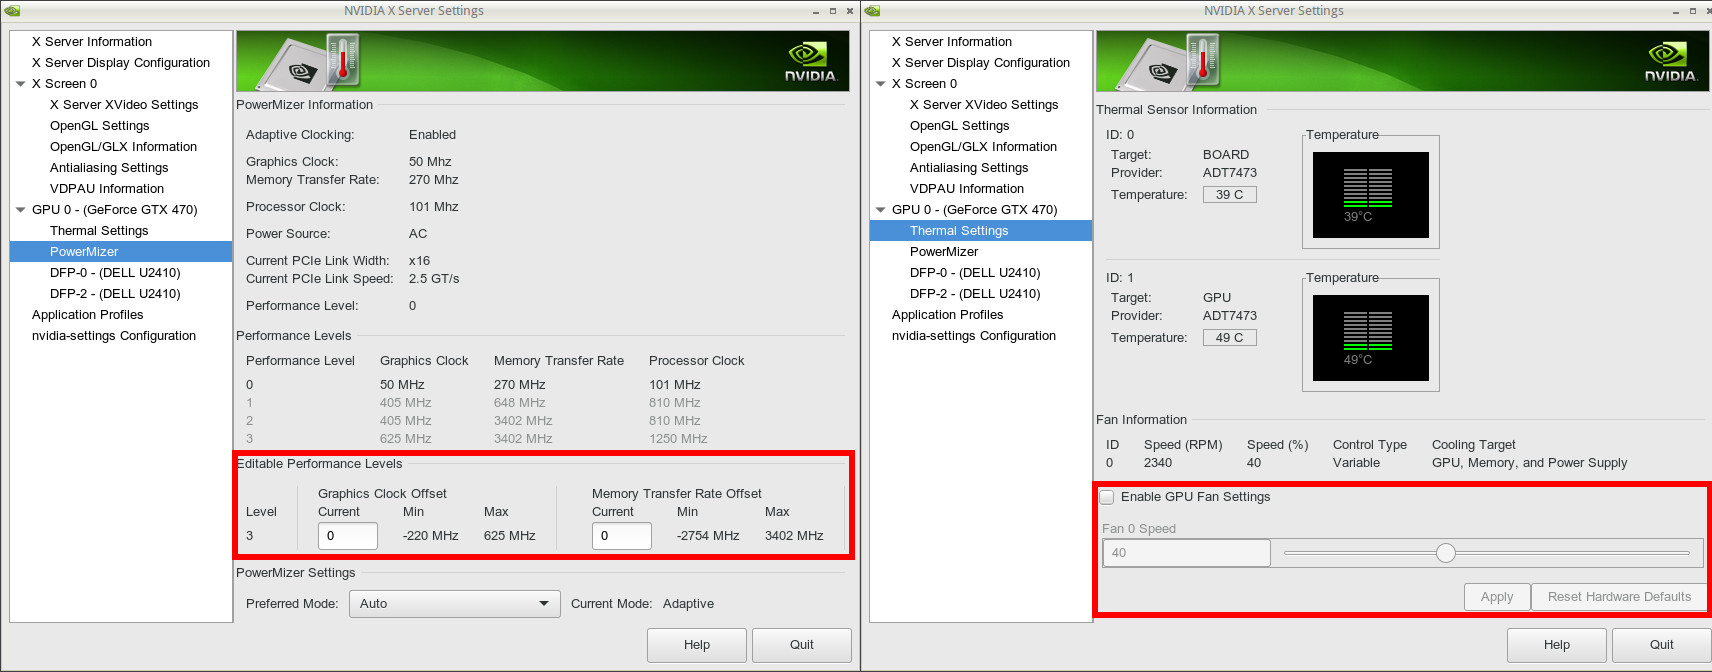 NVIDIA Linux drivers, PowerMizer, Coolbits, Performance Levels and